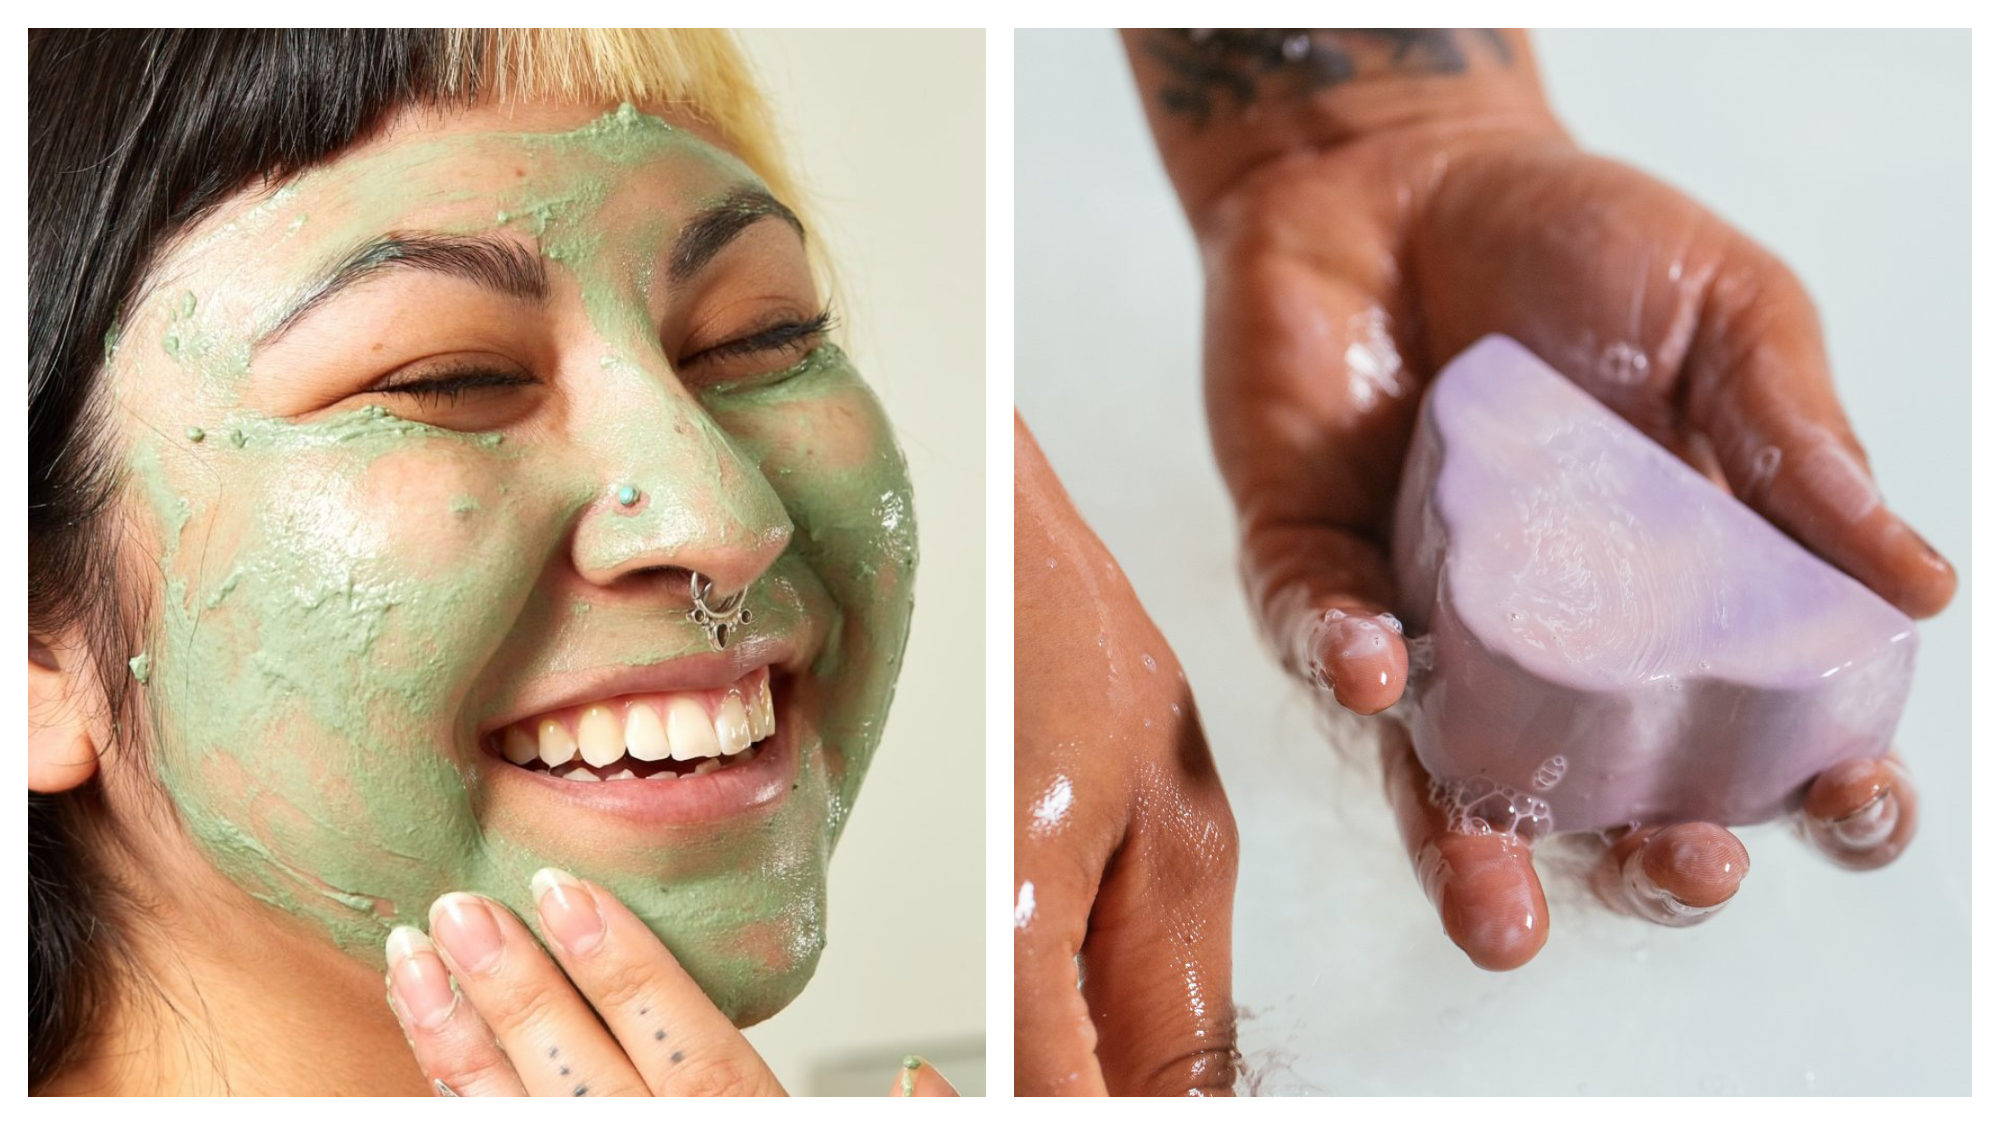 A Lush face mask applied to an Asian woman's smiling face with pearcings (left). A man holding a bar of pink Lush soap (right).